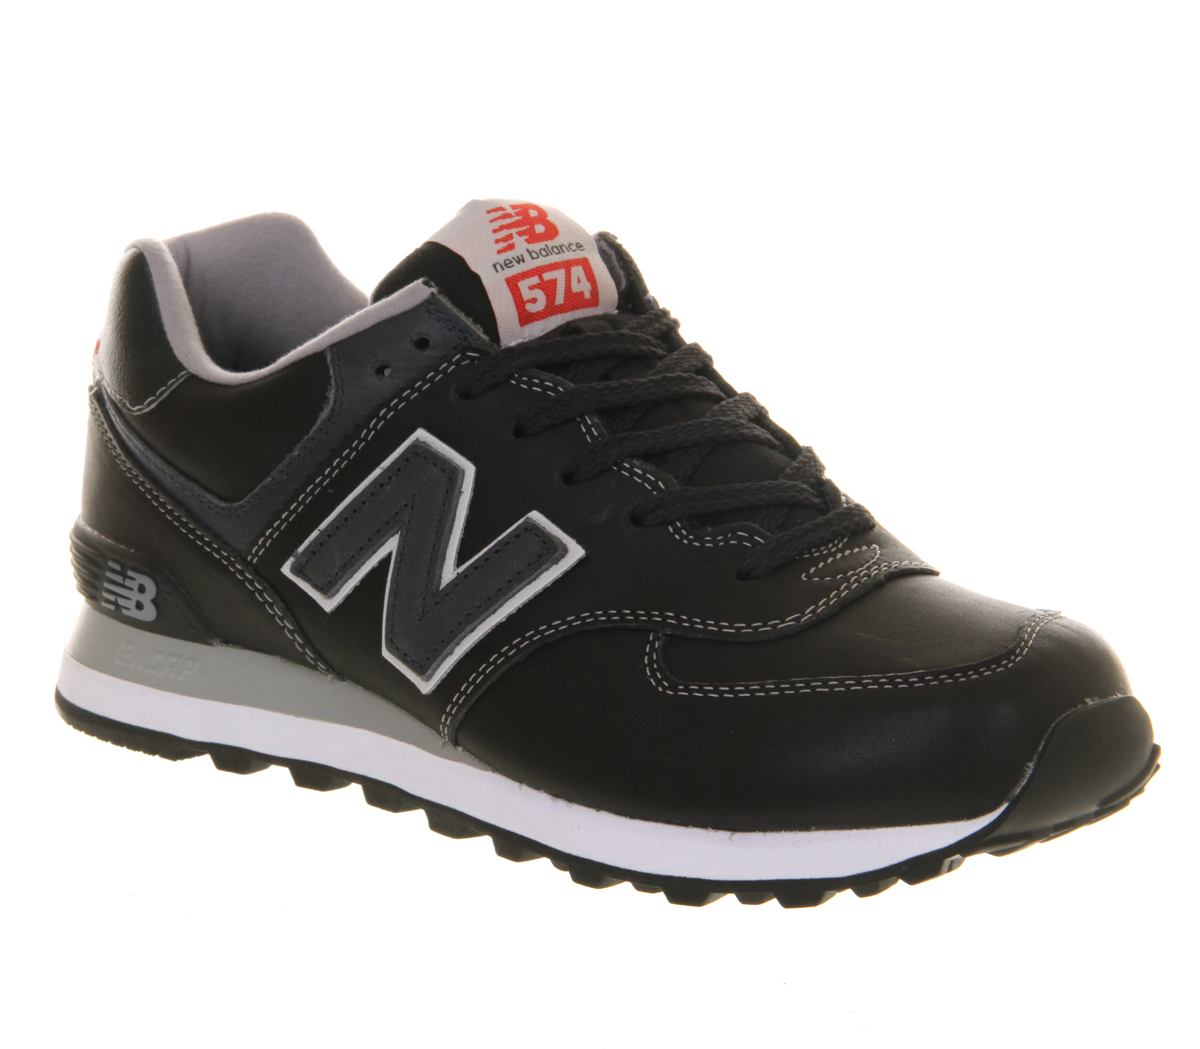 New-Balance-New-Balance-M574-NAVY-LEATHER-EXCLUSIVE-Trainers-Shoes